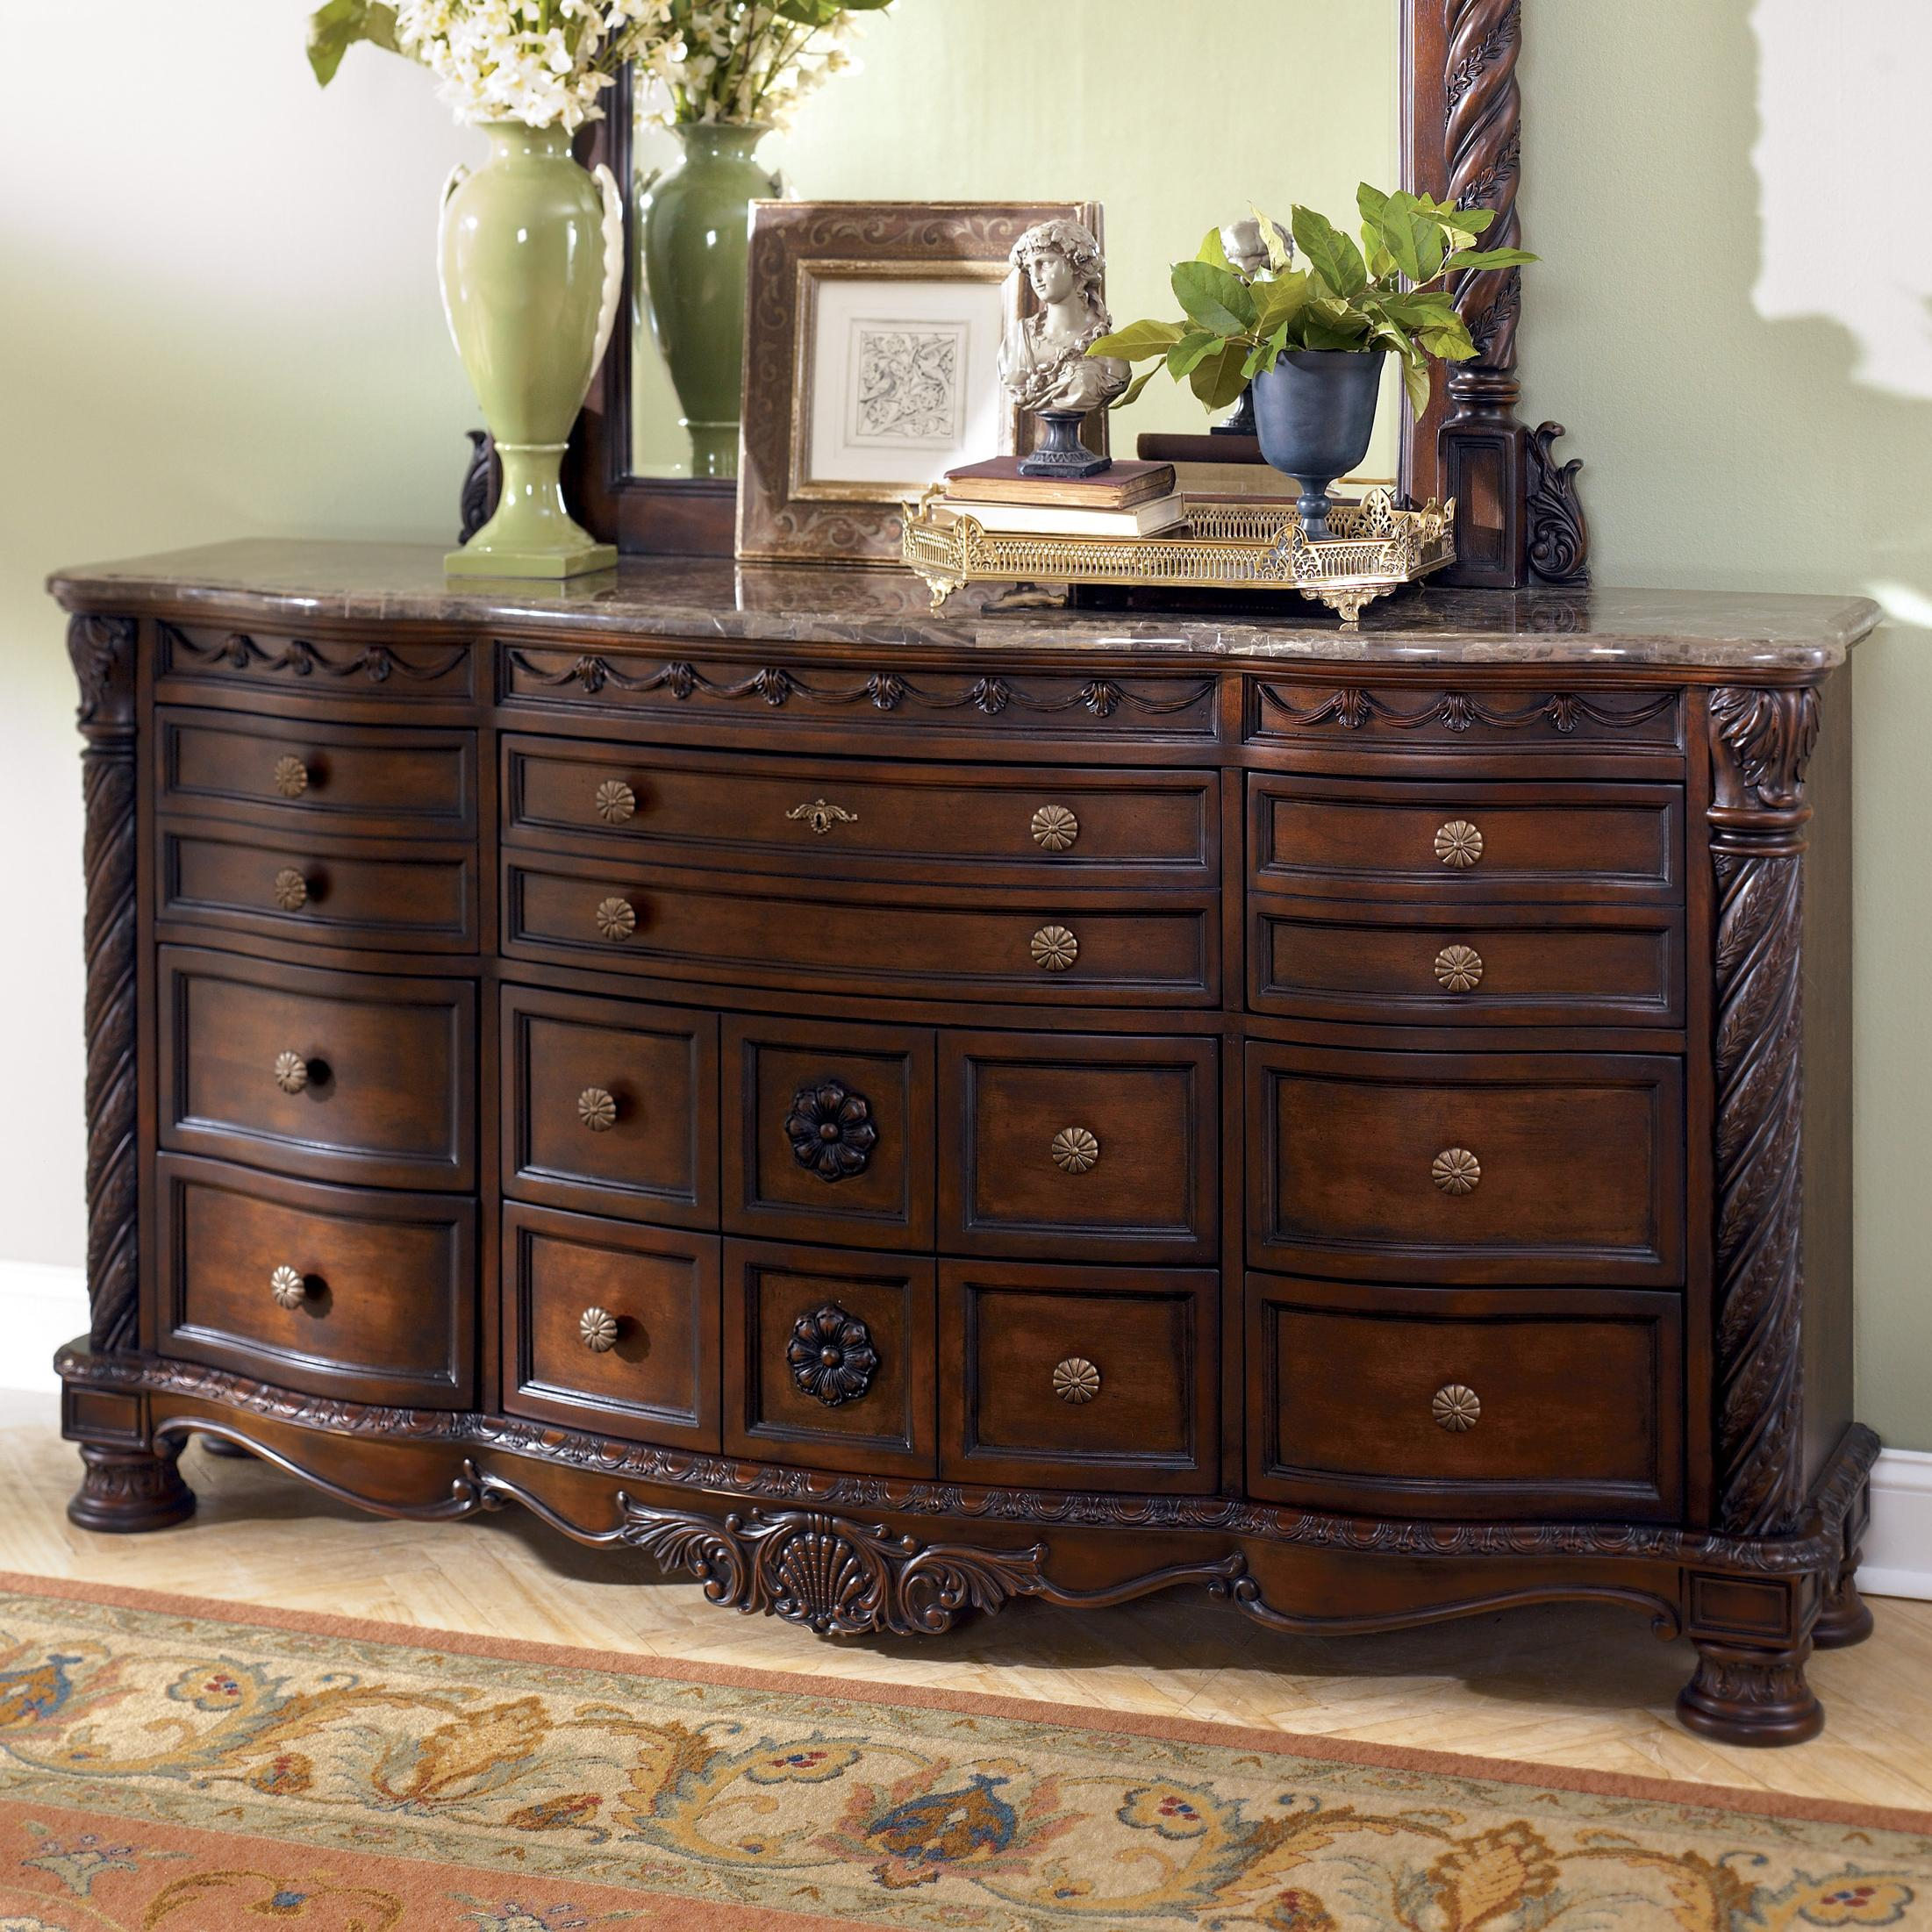 Millennium North Shore Stone Top Dresser Value City